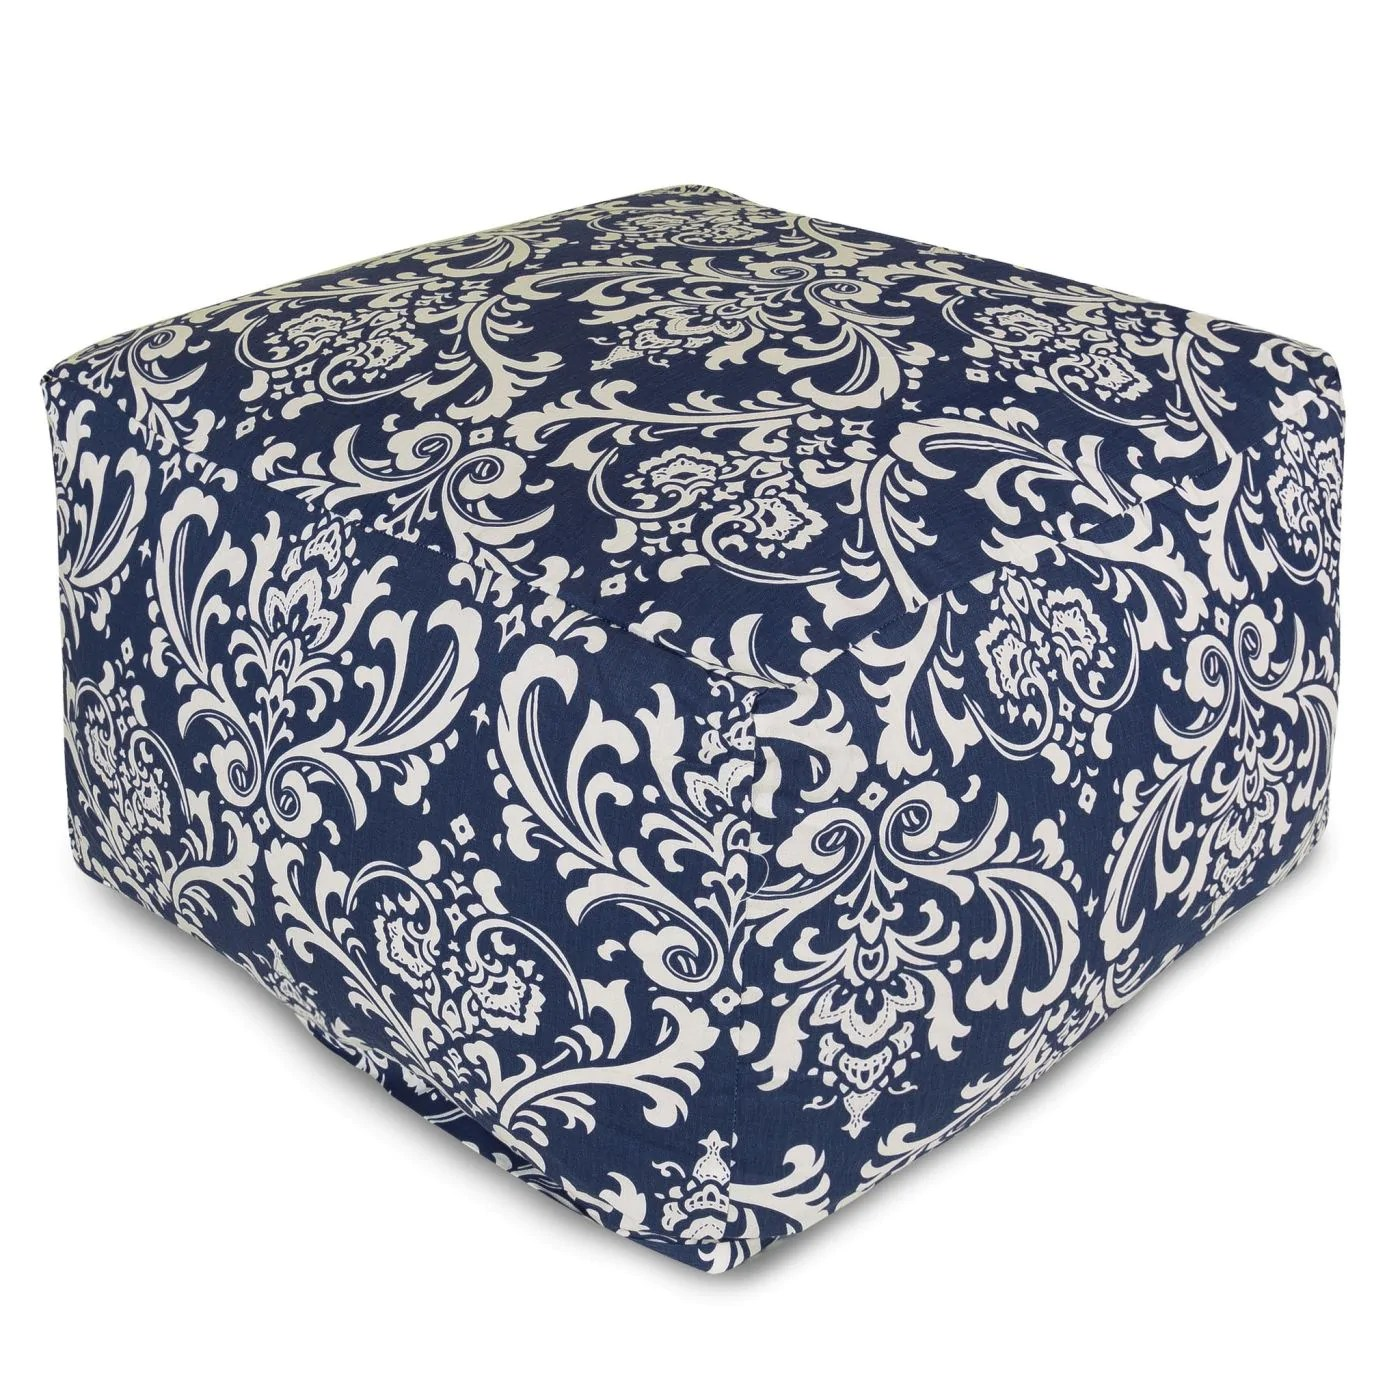 navy blue chair with ottoman yoga instructor training majestic home french quarter large at